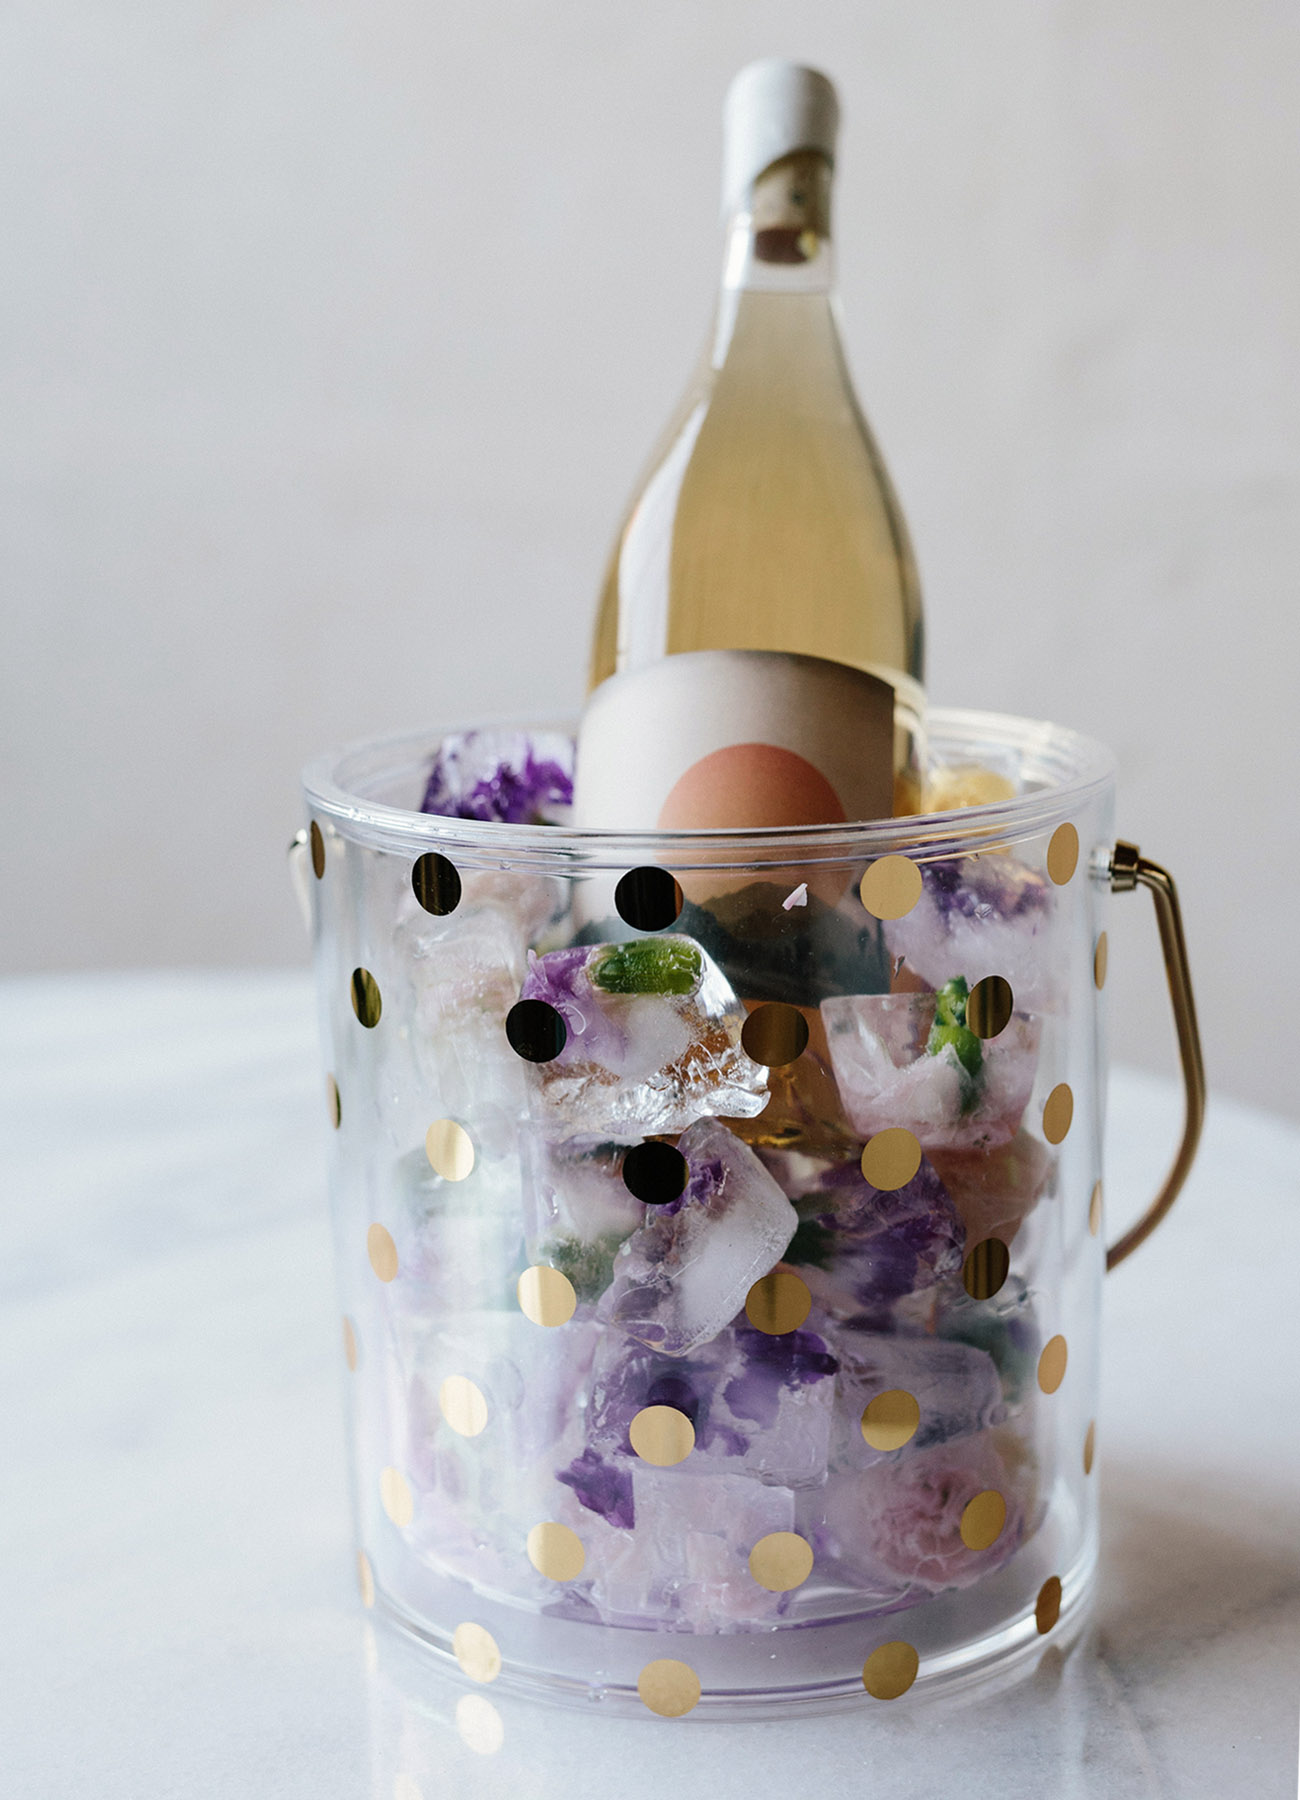 Kate Spade Ice Bucket with floral ice cubes